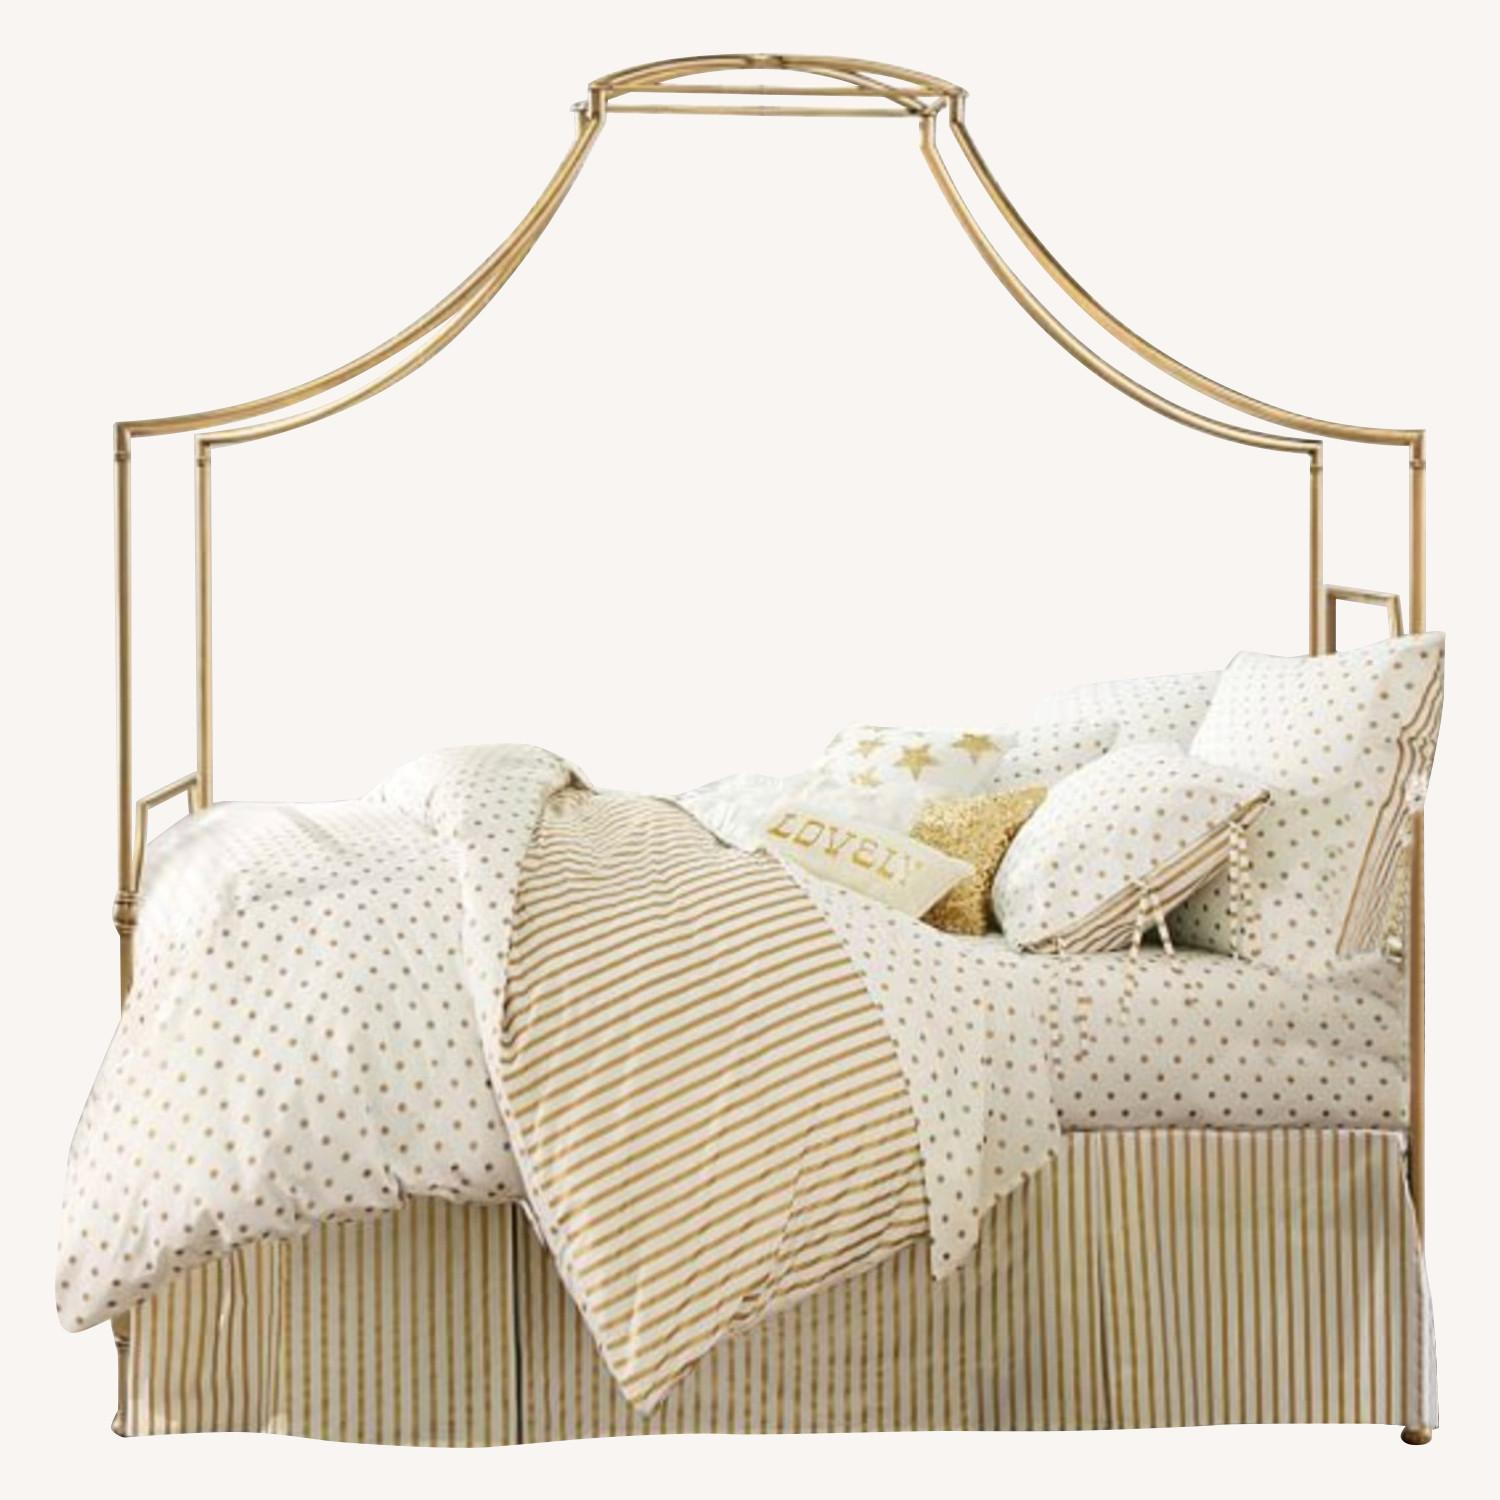 Pottery Barn Teen: Full Gold Maison Canopy Bed